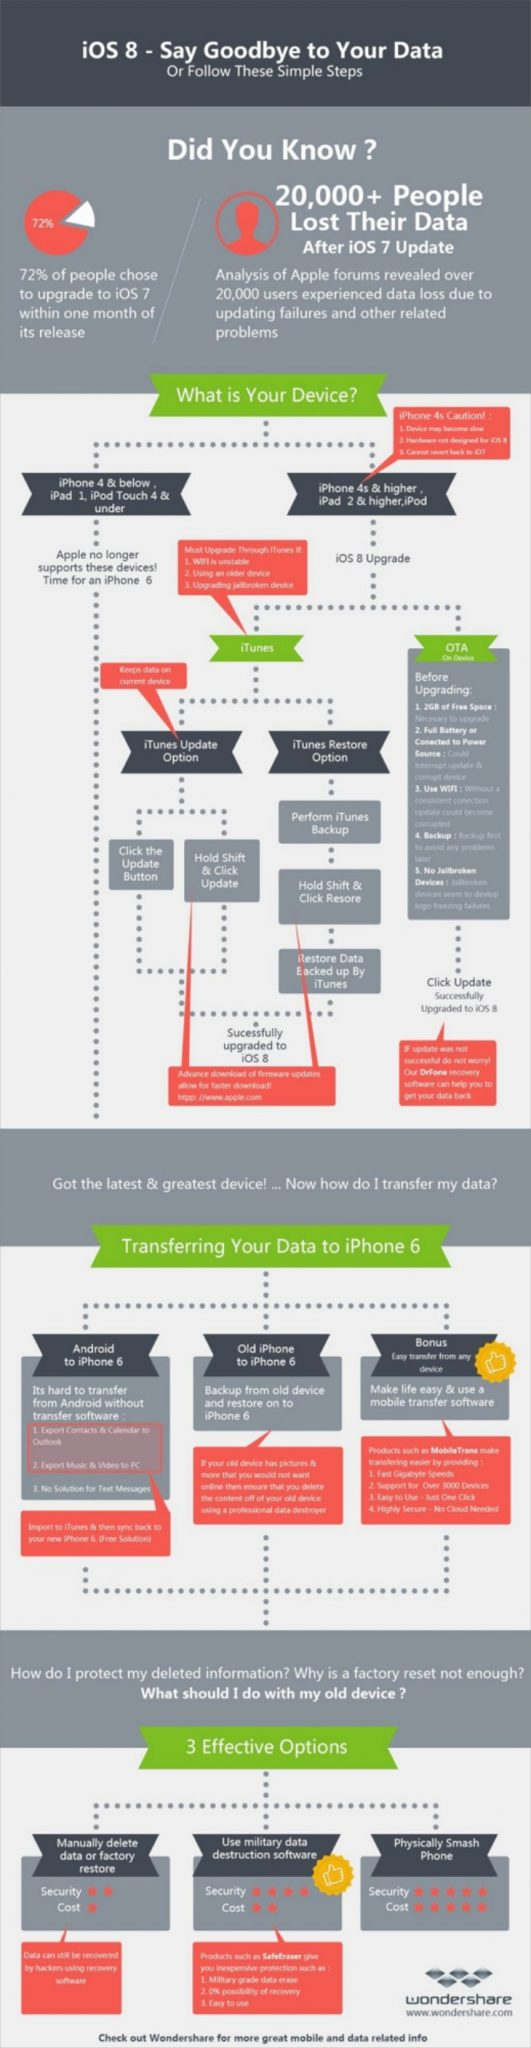 Android to iPhone 6 iOS 8 compatibility